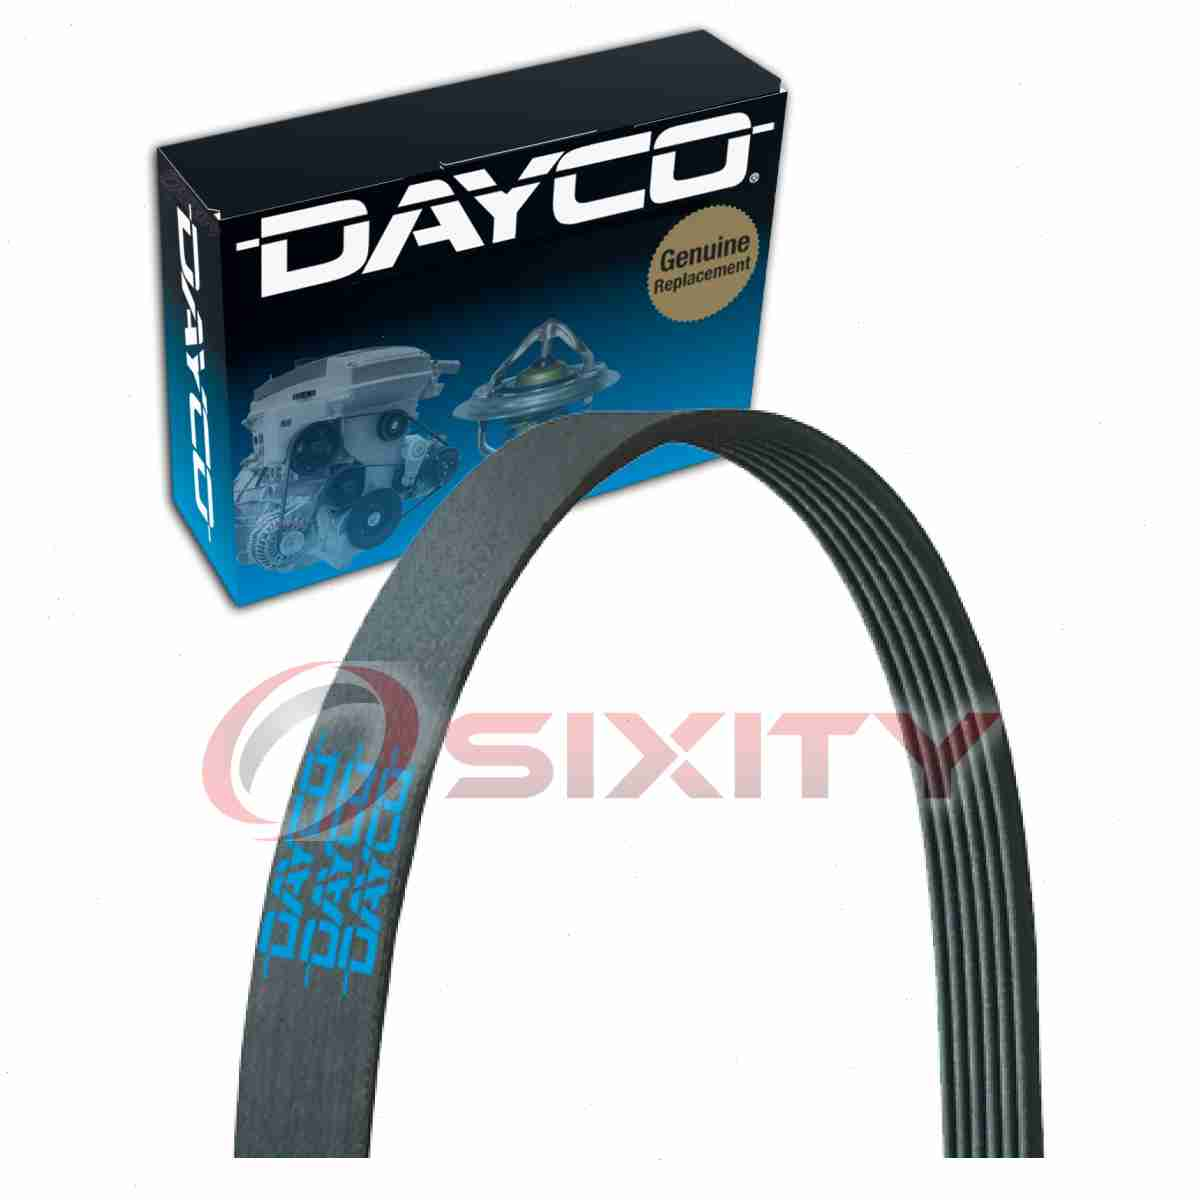 small resolution of built for passenger cars and light duty trucks the extensive line of dayco poly rib serpentine belts are engineered for high mileage demanding drives